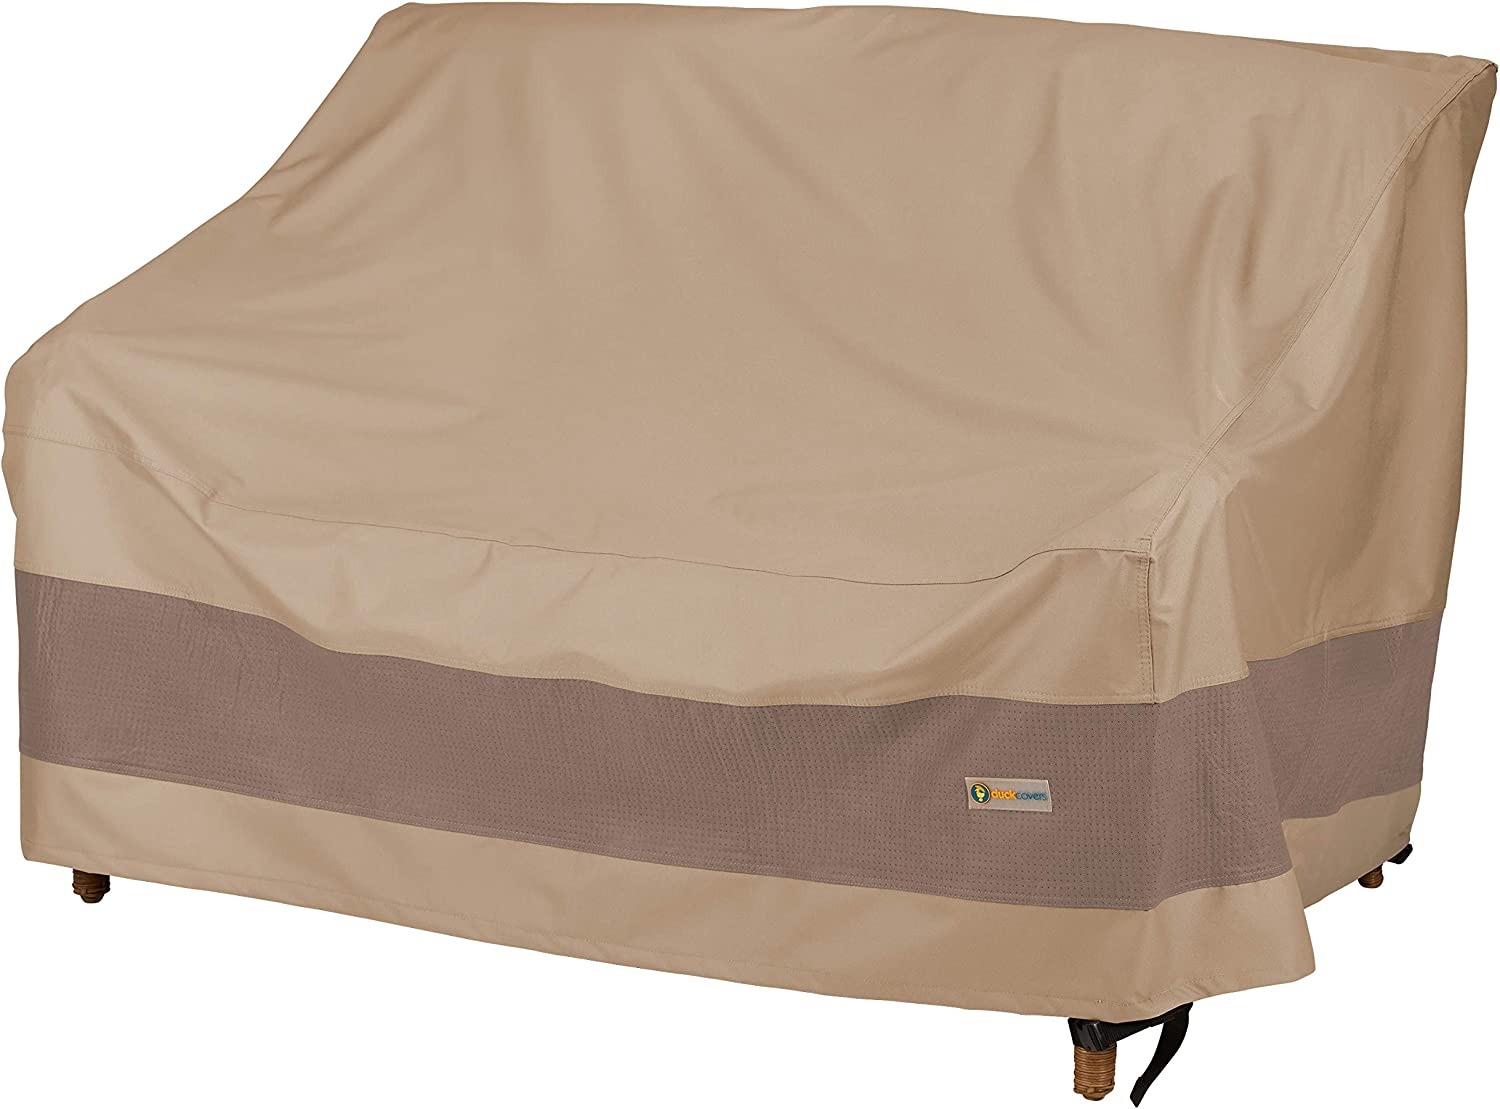 "Duck Covers Elegant Water-Resistant 52"" Inch Patio Loveseat Cover: Automotive"